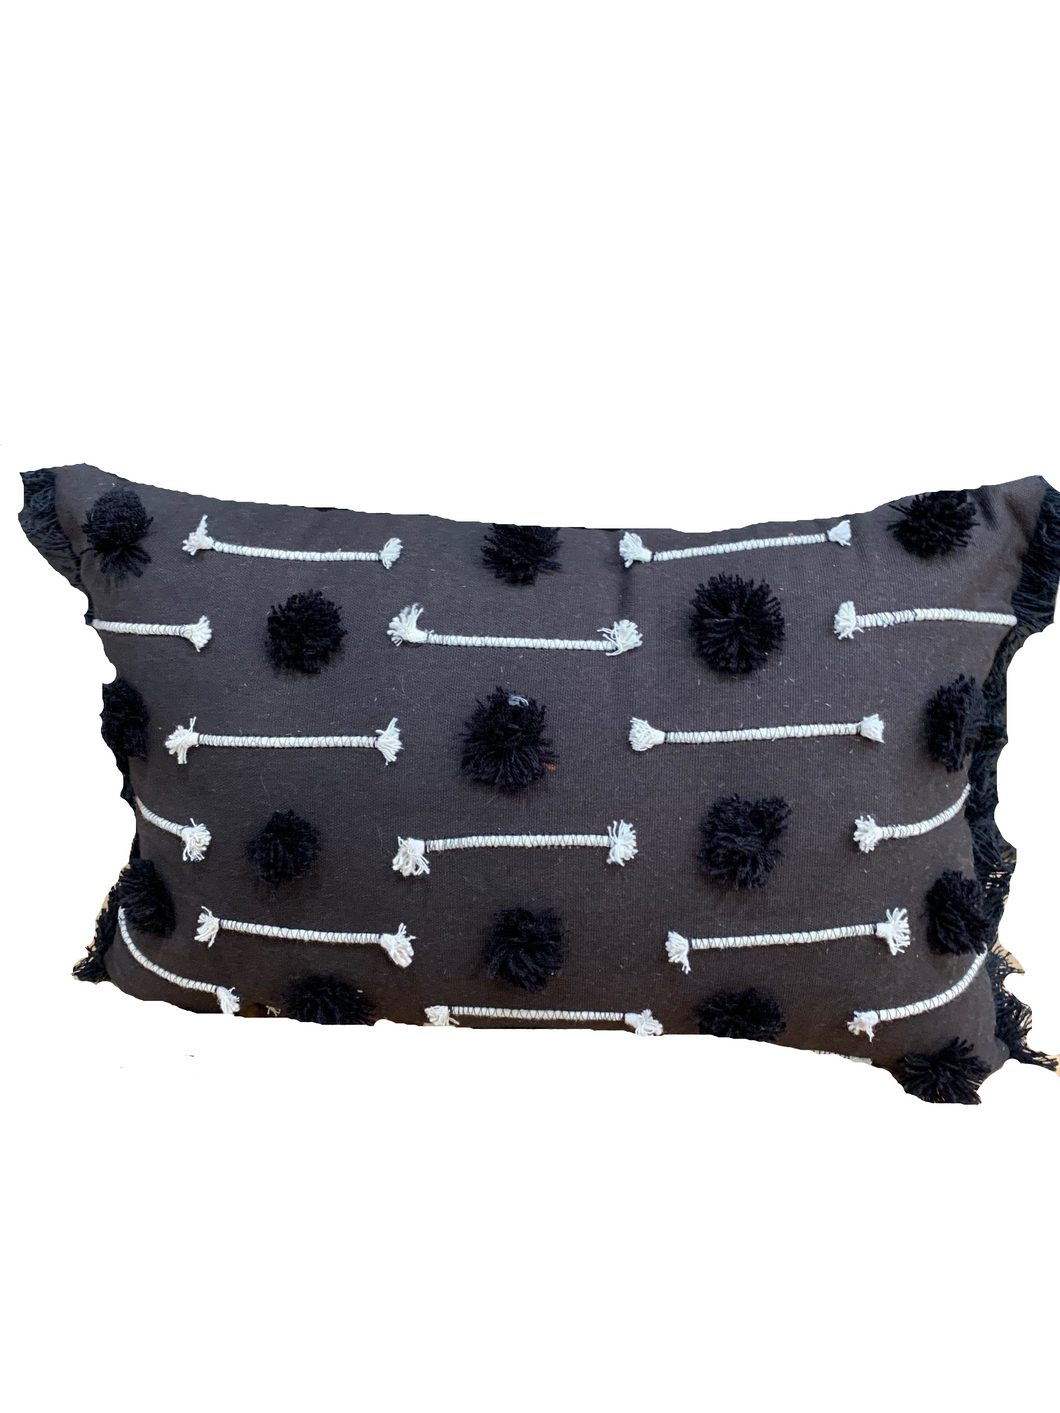 BLACK EMBROIDERED LINE ACCENT PILLOW WITH TUFFS